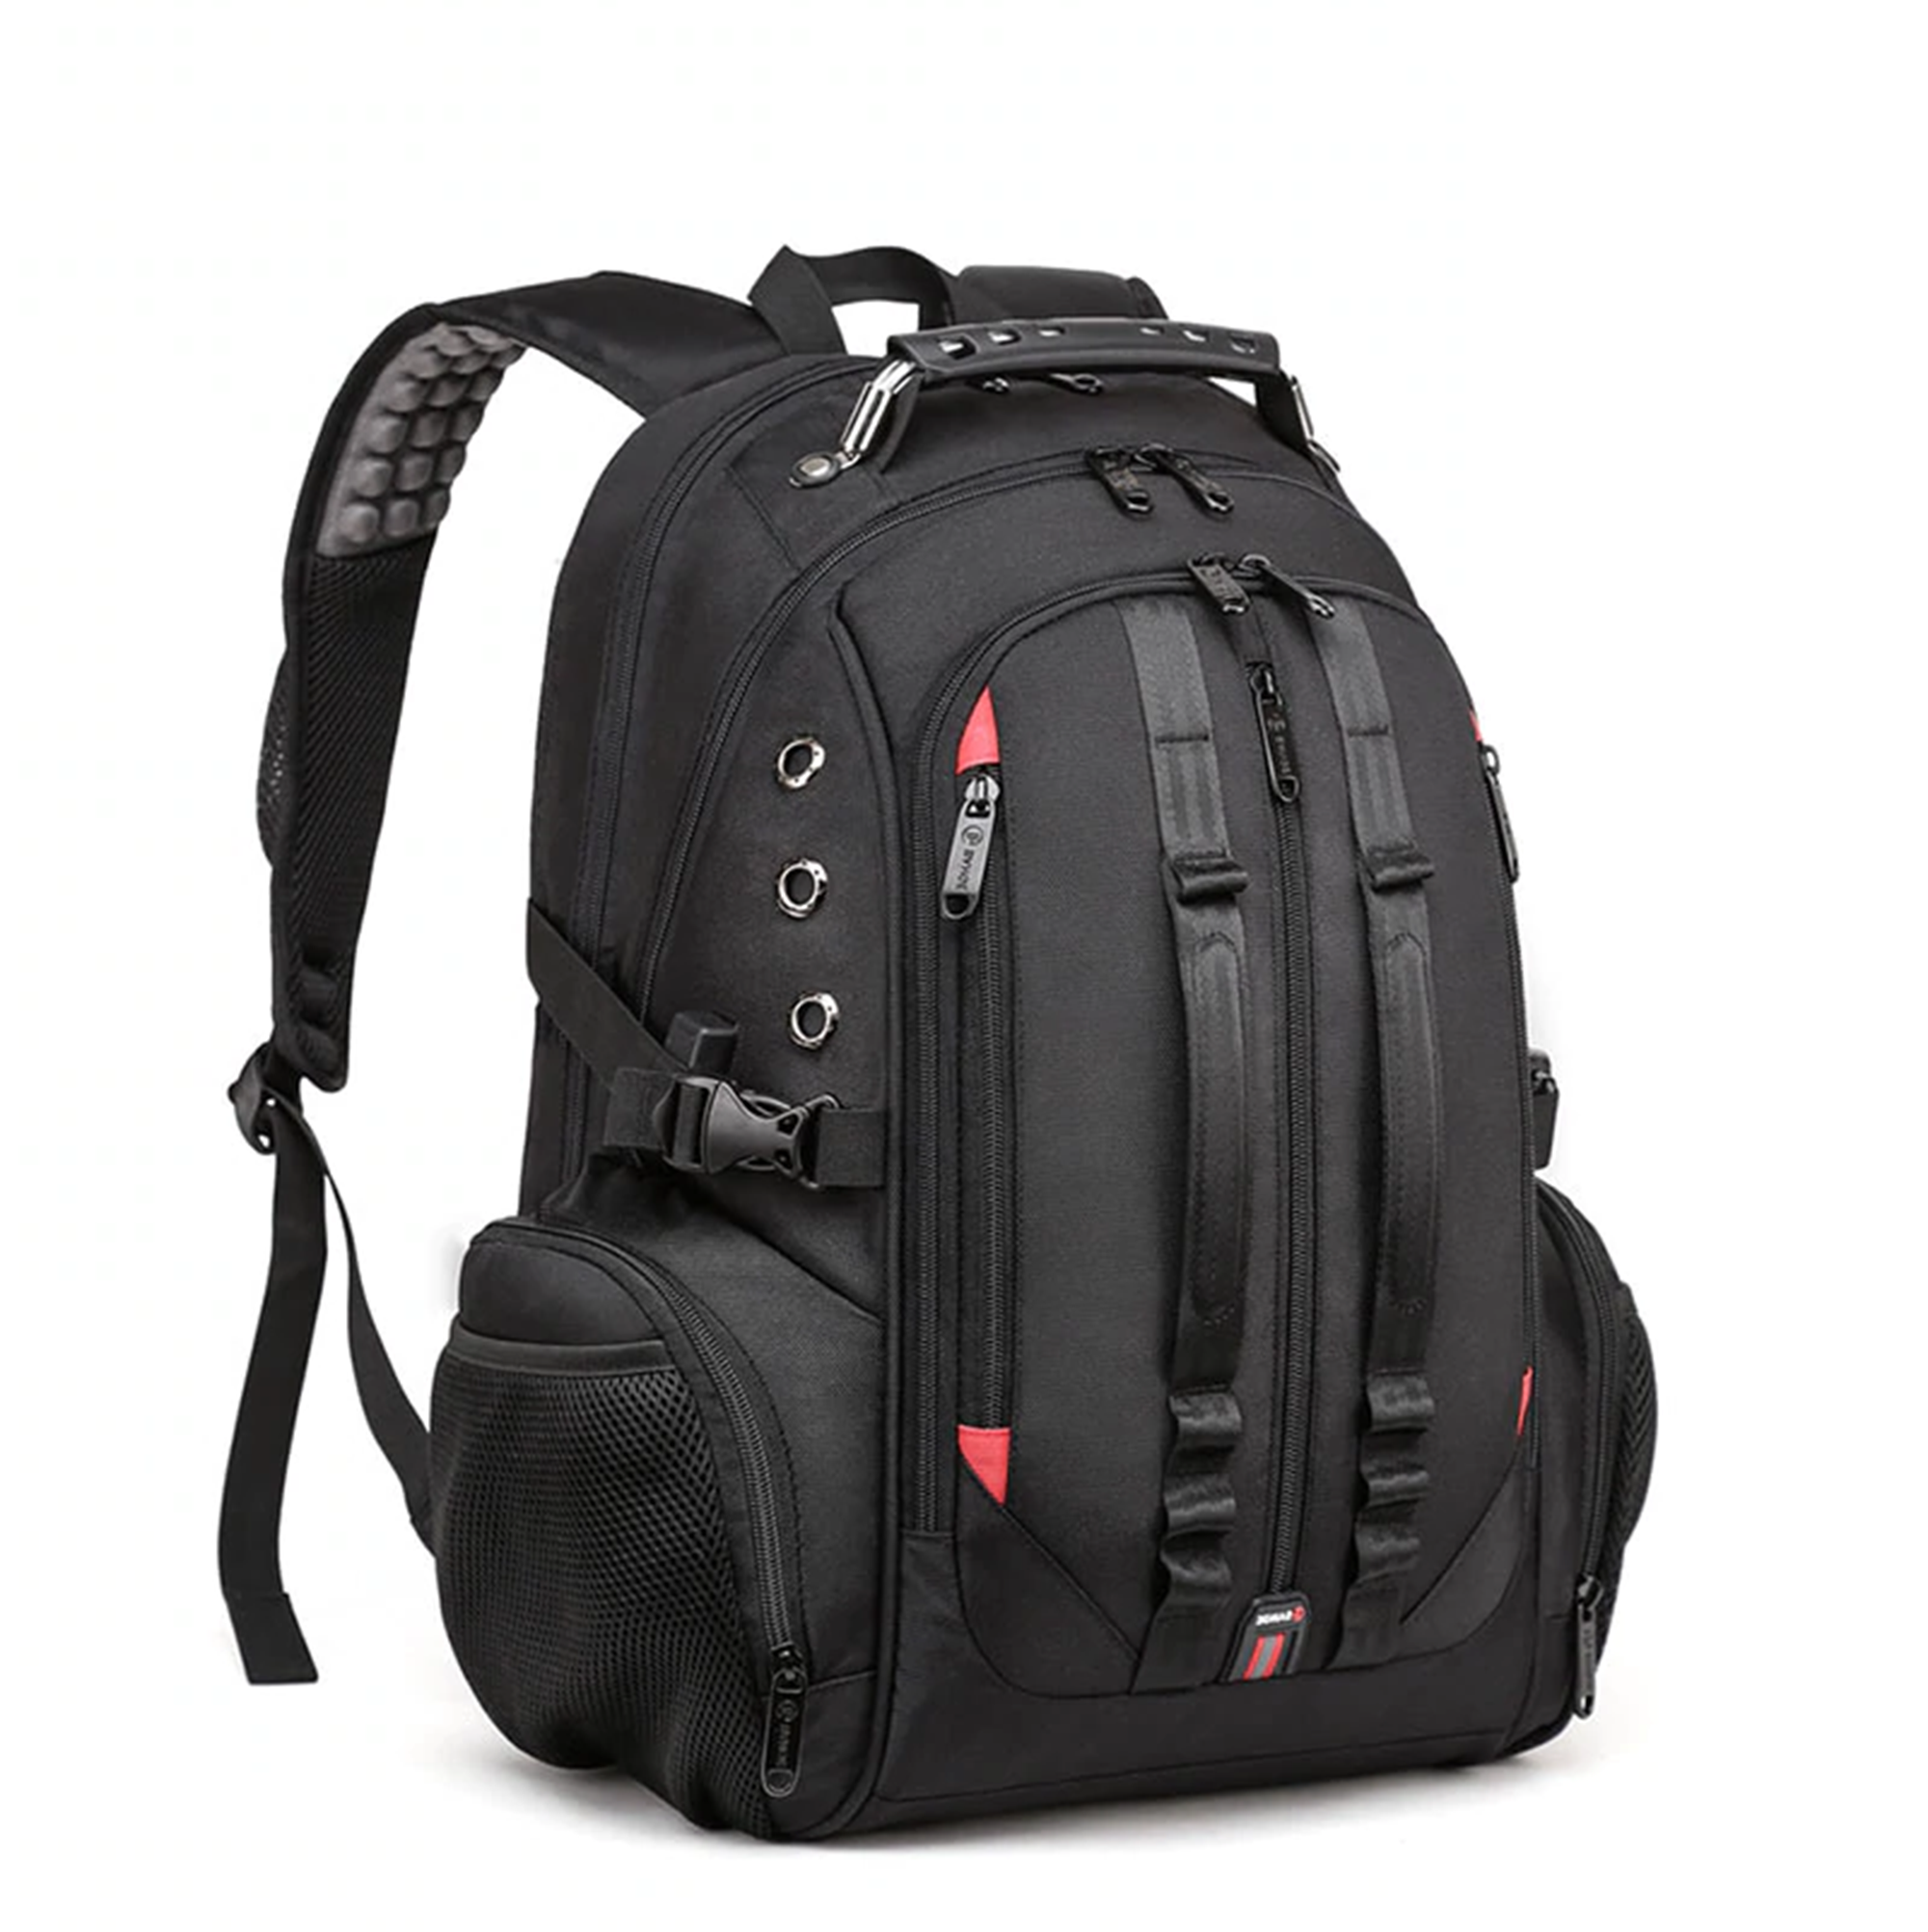 LAPTOP BACKPACK OUTDOOR SCHOOL DAY PACK BAG BANGE BG1901 – BLACK (1)